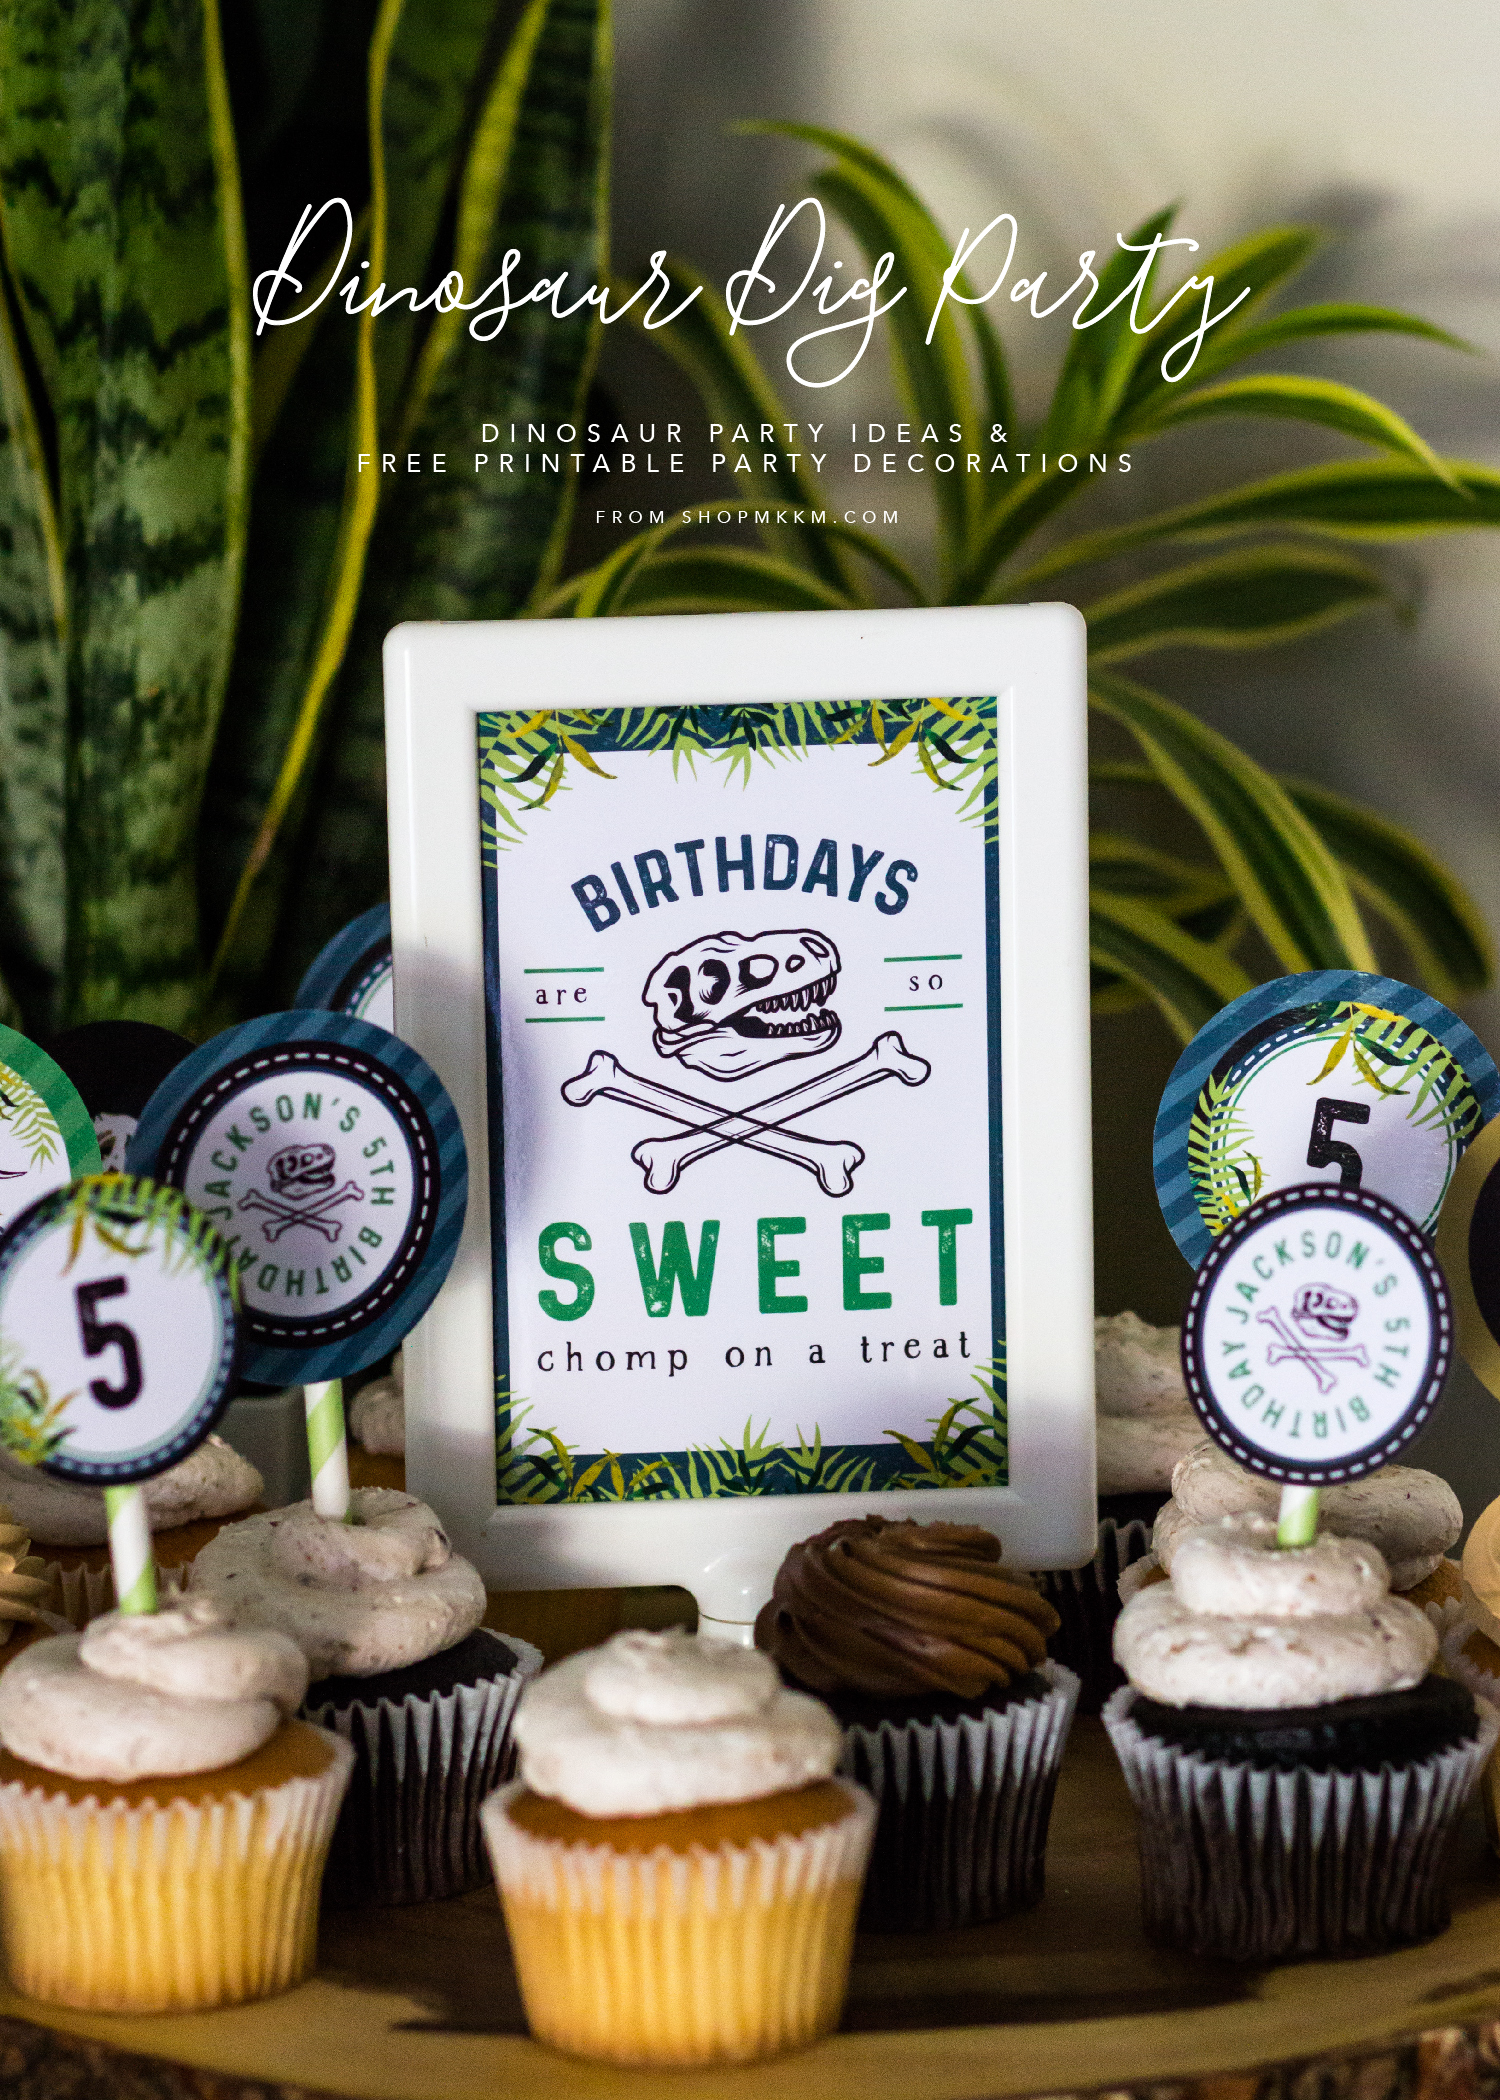 Dinosaur Dig Party. Dinosaur Party ideas and free printables from shopmkkm.com